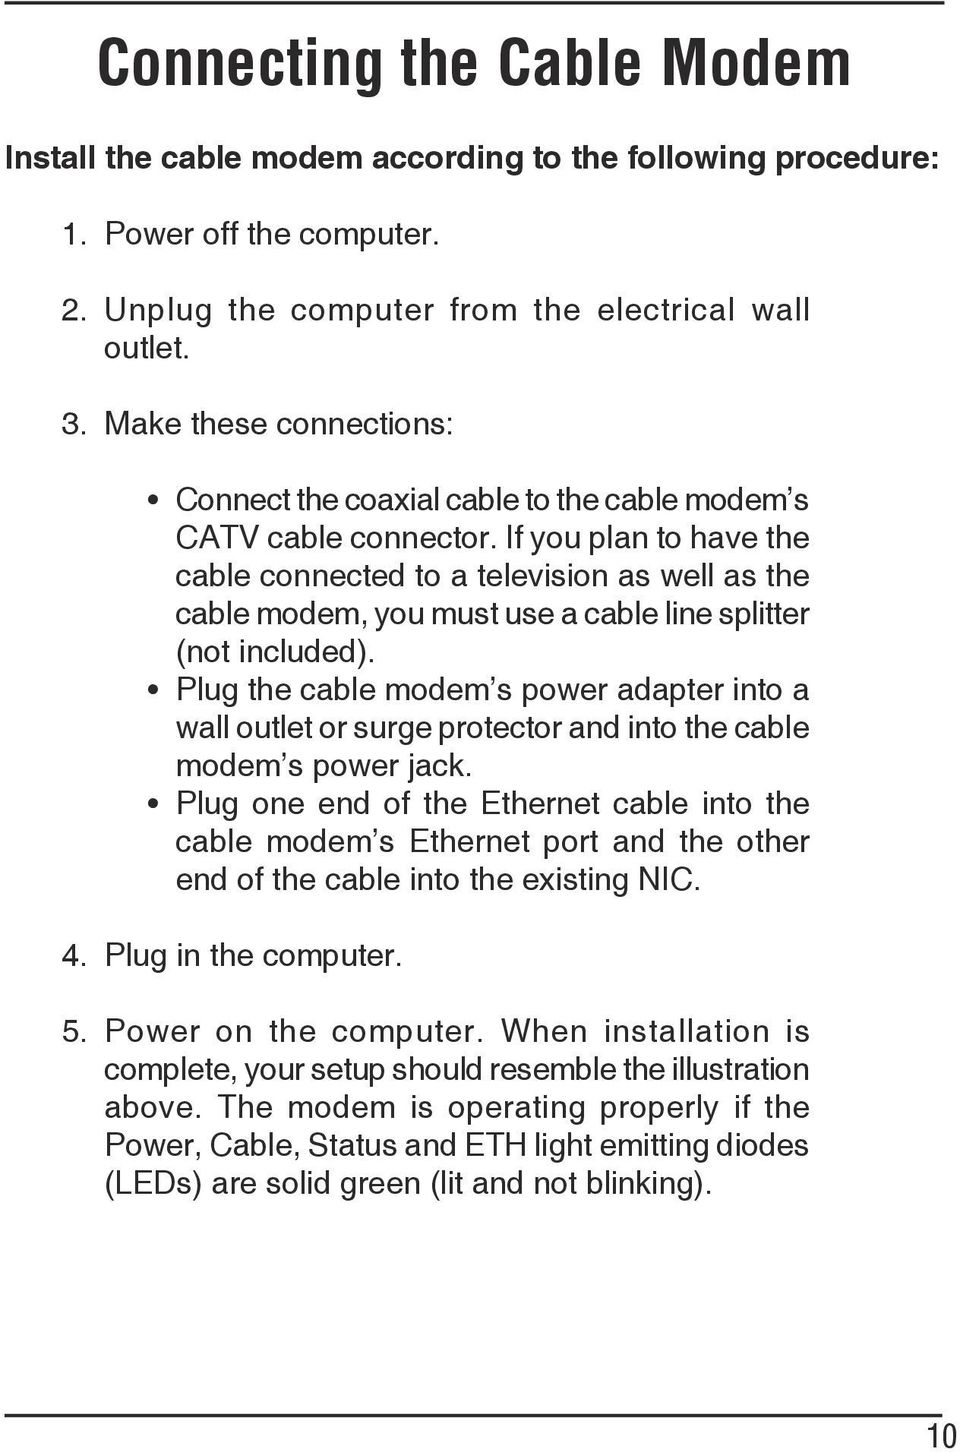 If you plan to have the cable connected to a television as well as the cable modem, you must use a cable line splitter (not included).